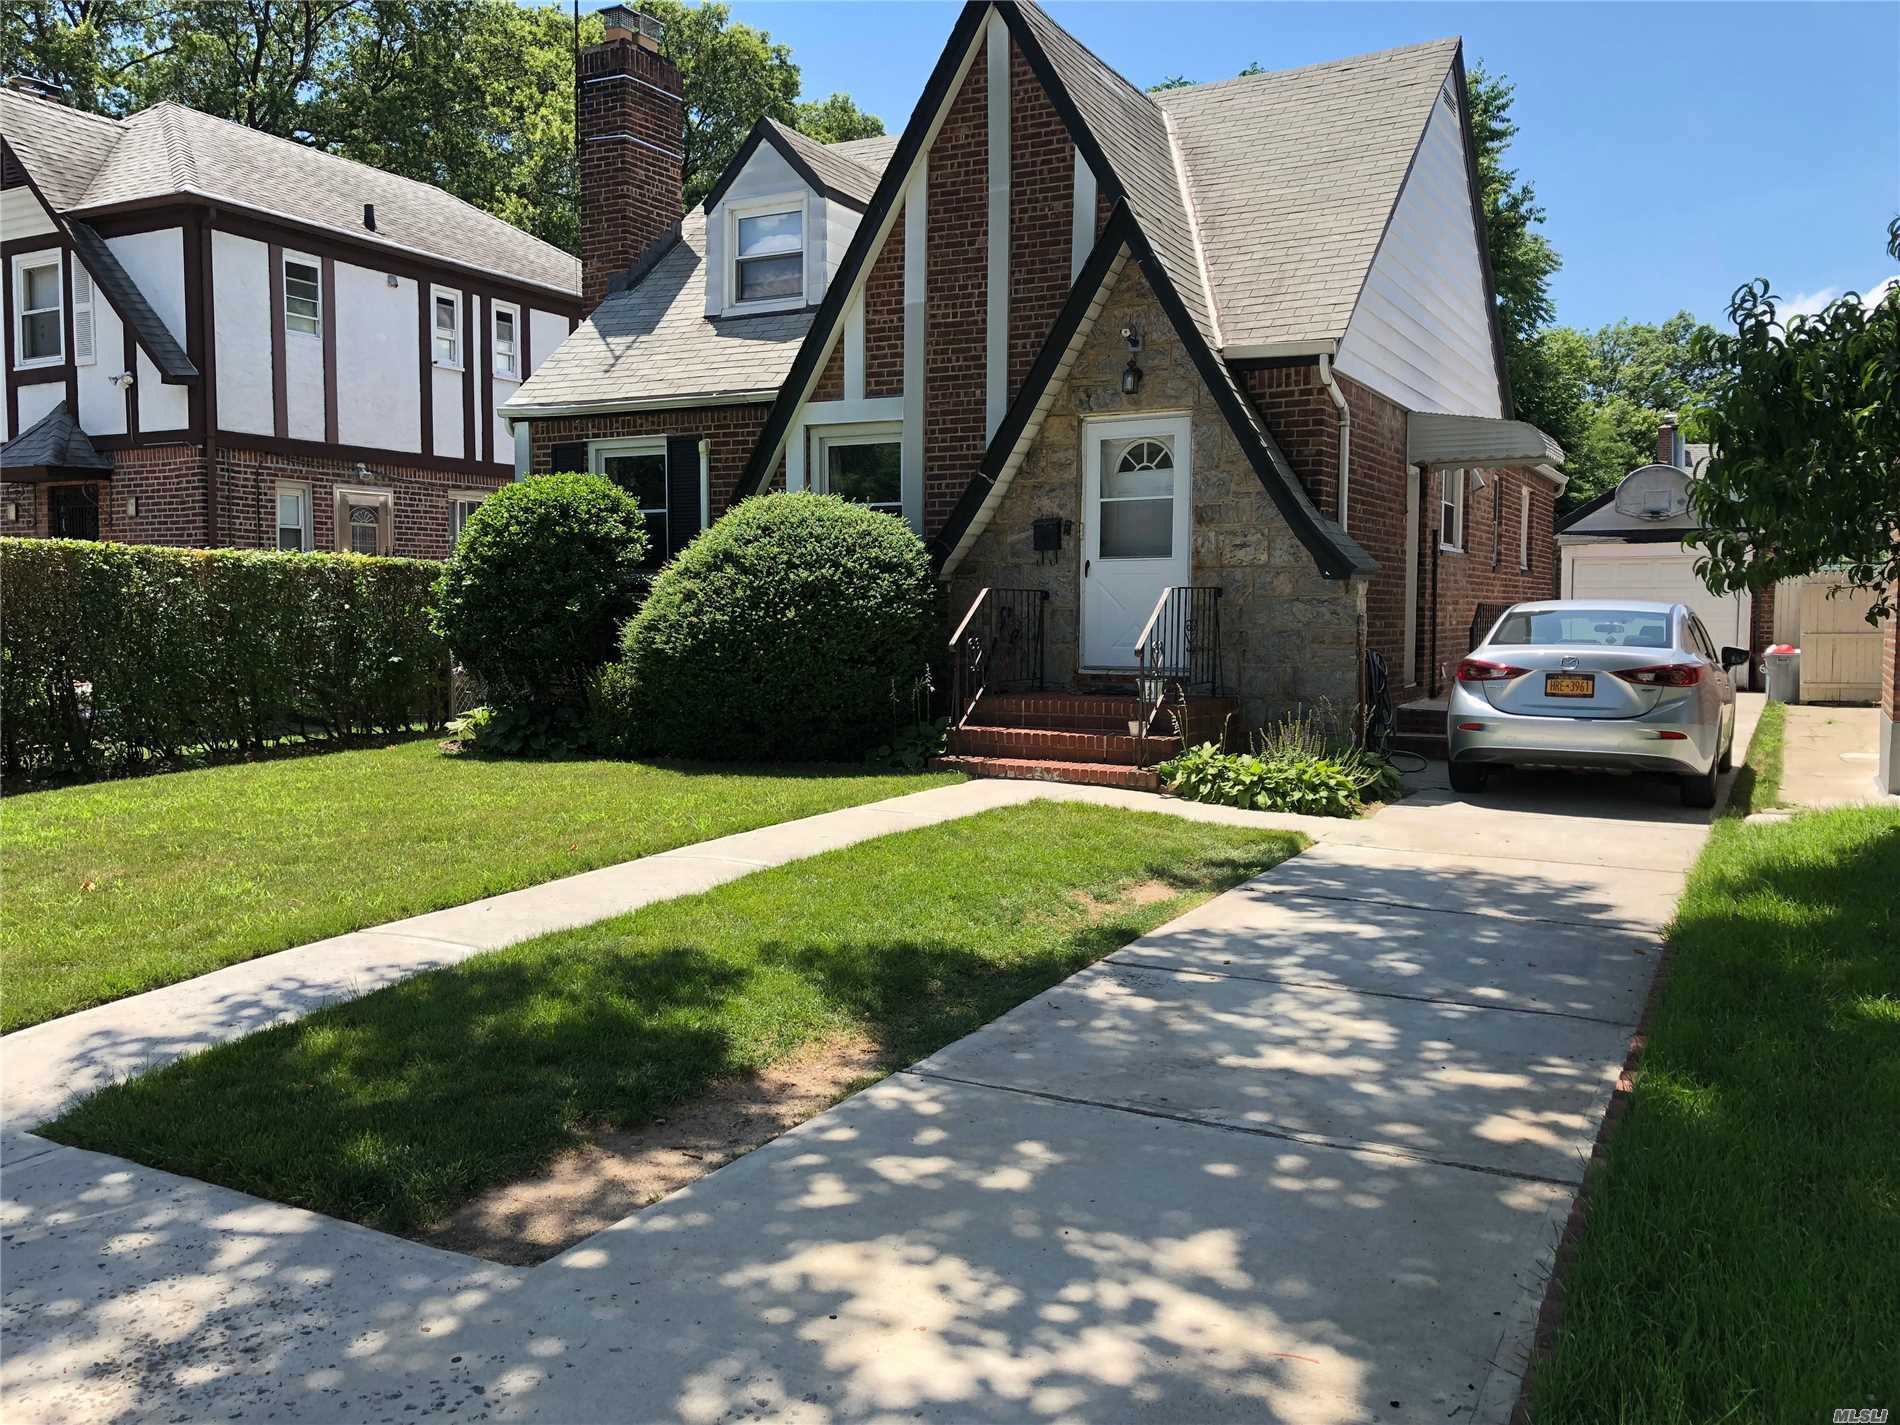 Good Size 3 Bed And 2 Full Bathrooms On 1st Floor, Heat And Water Include